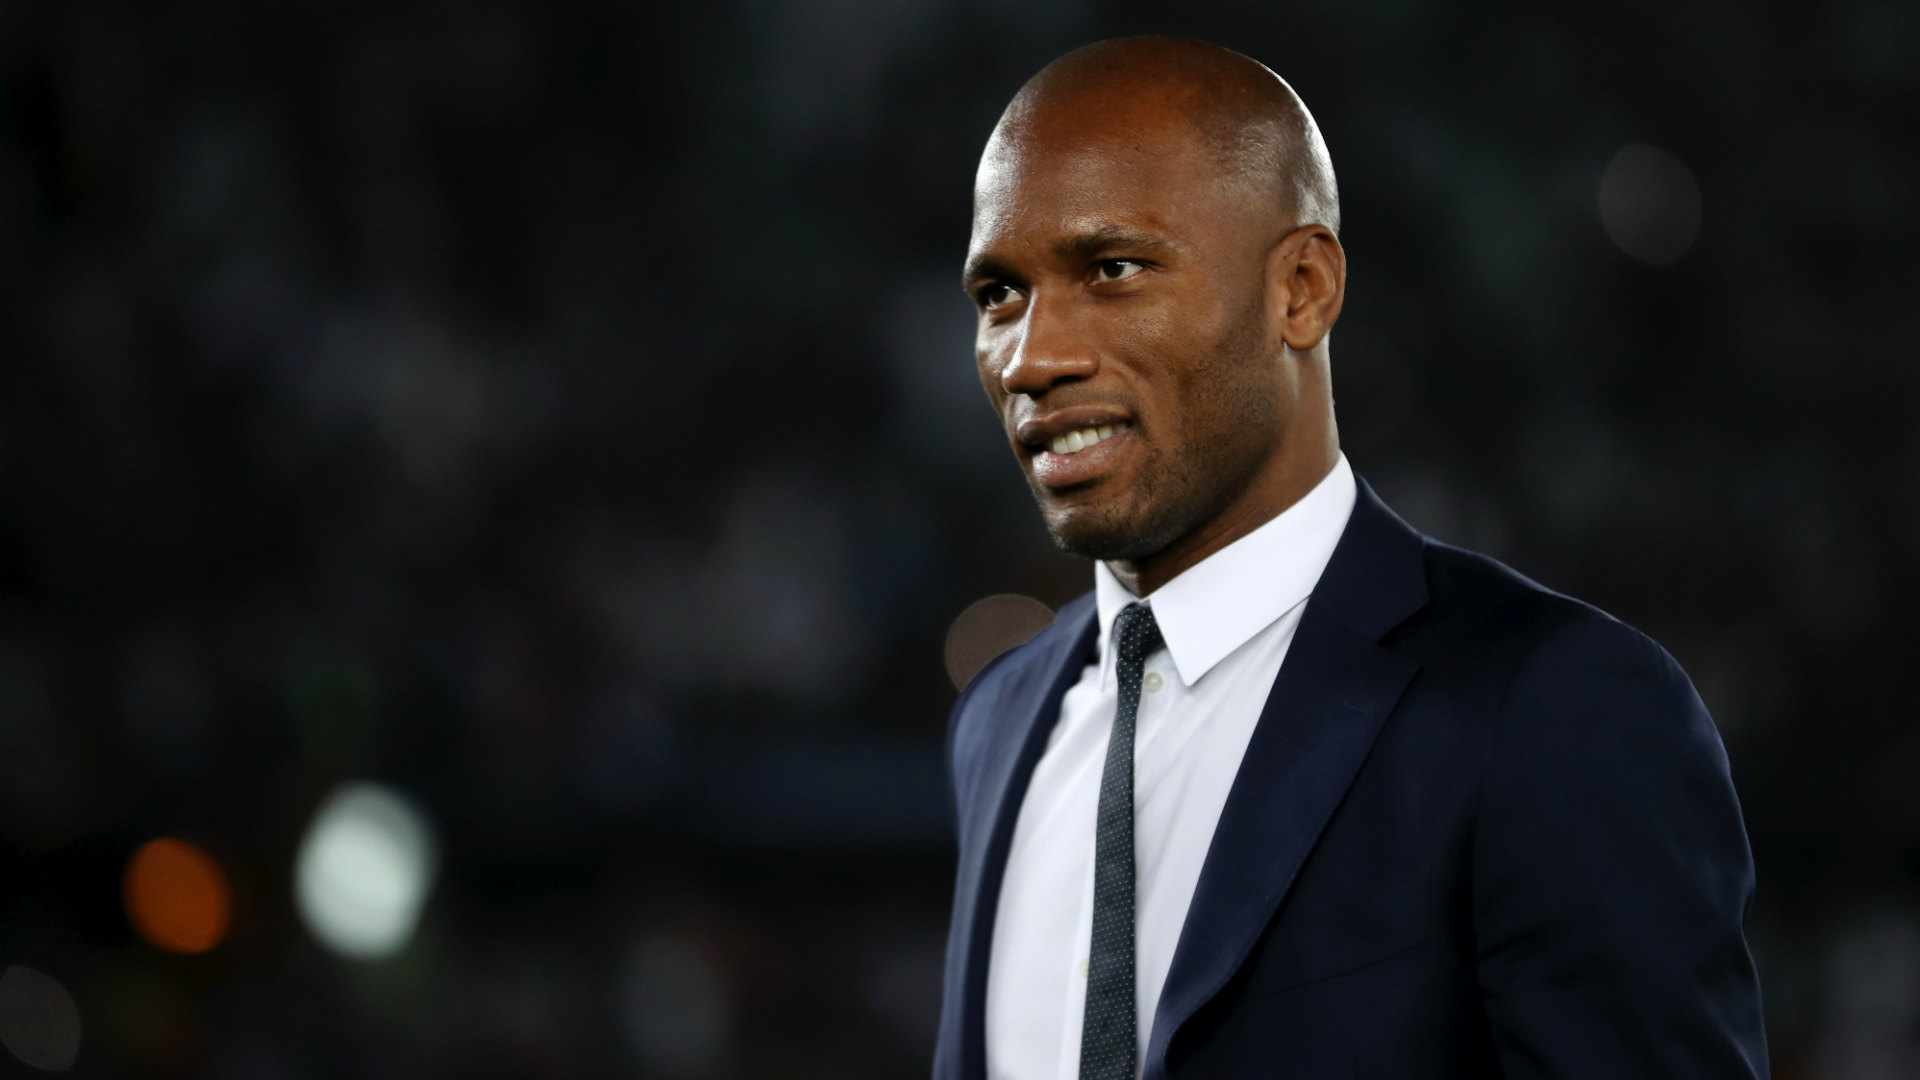 Didier Drogba's Application To Contest For President of Ivory Coast Football Federation Rejected